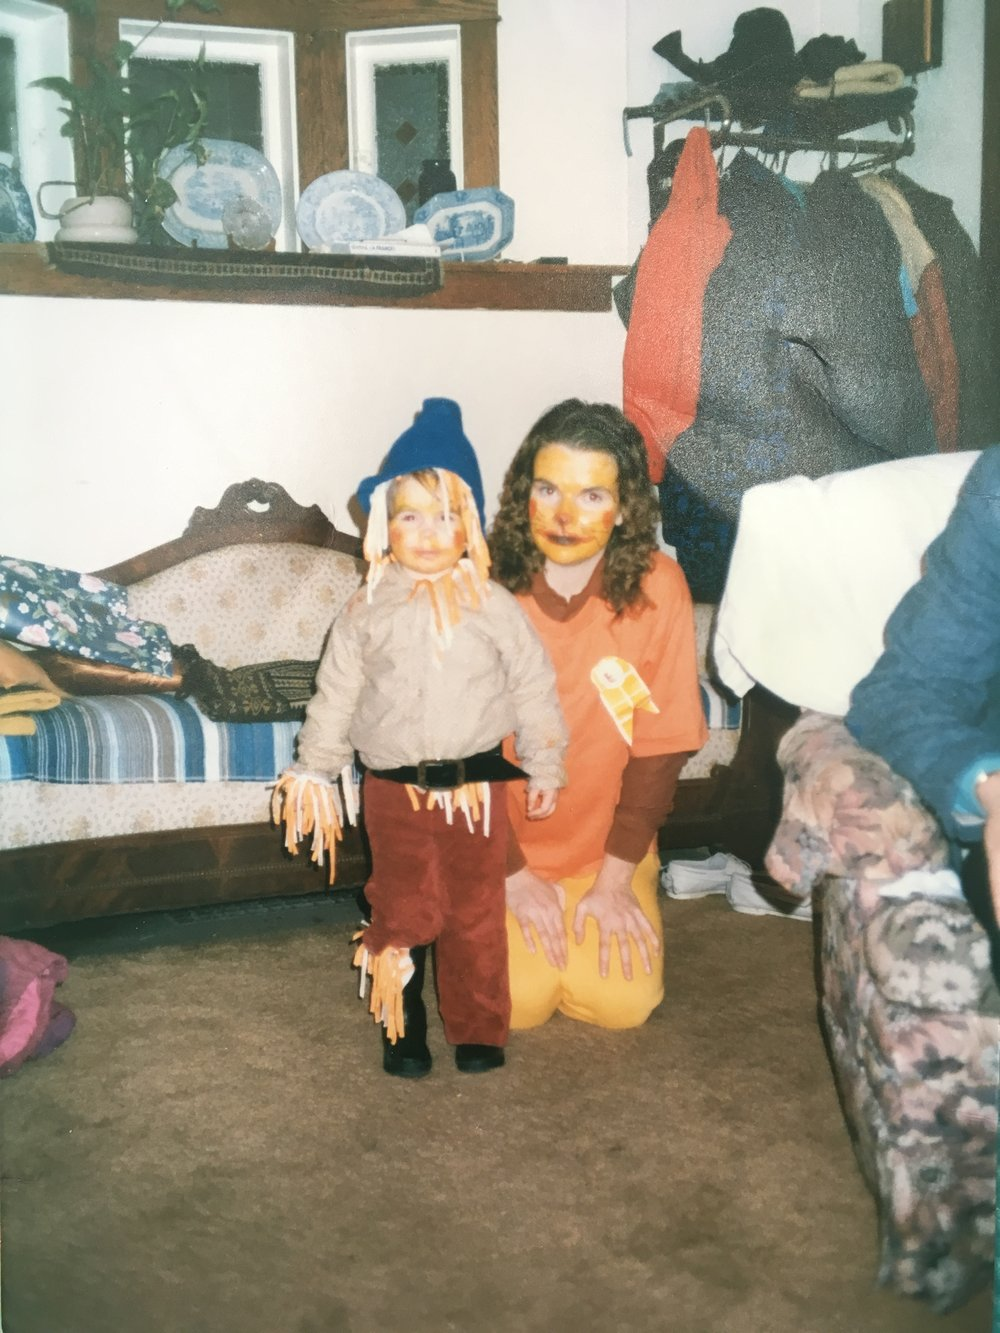 Wizard of Oz – The Scarecrow (me) + The Lion (mum)